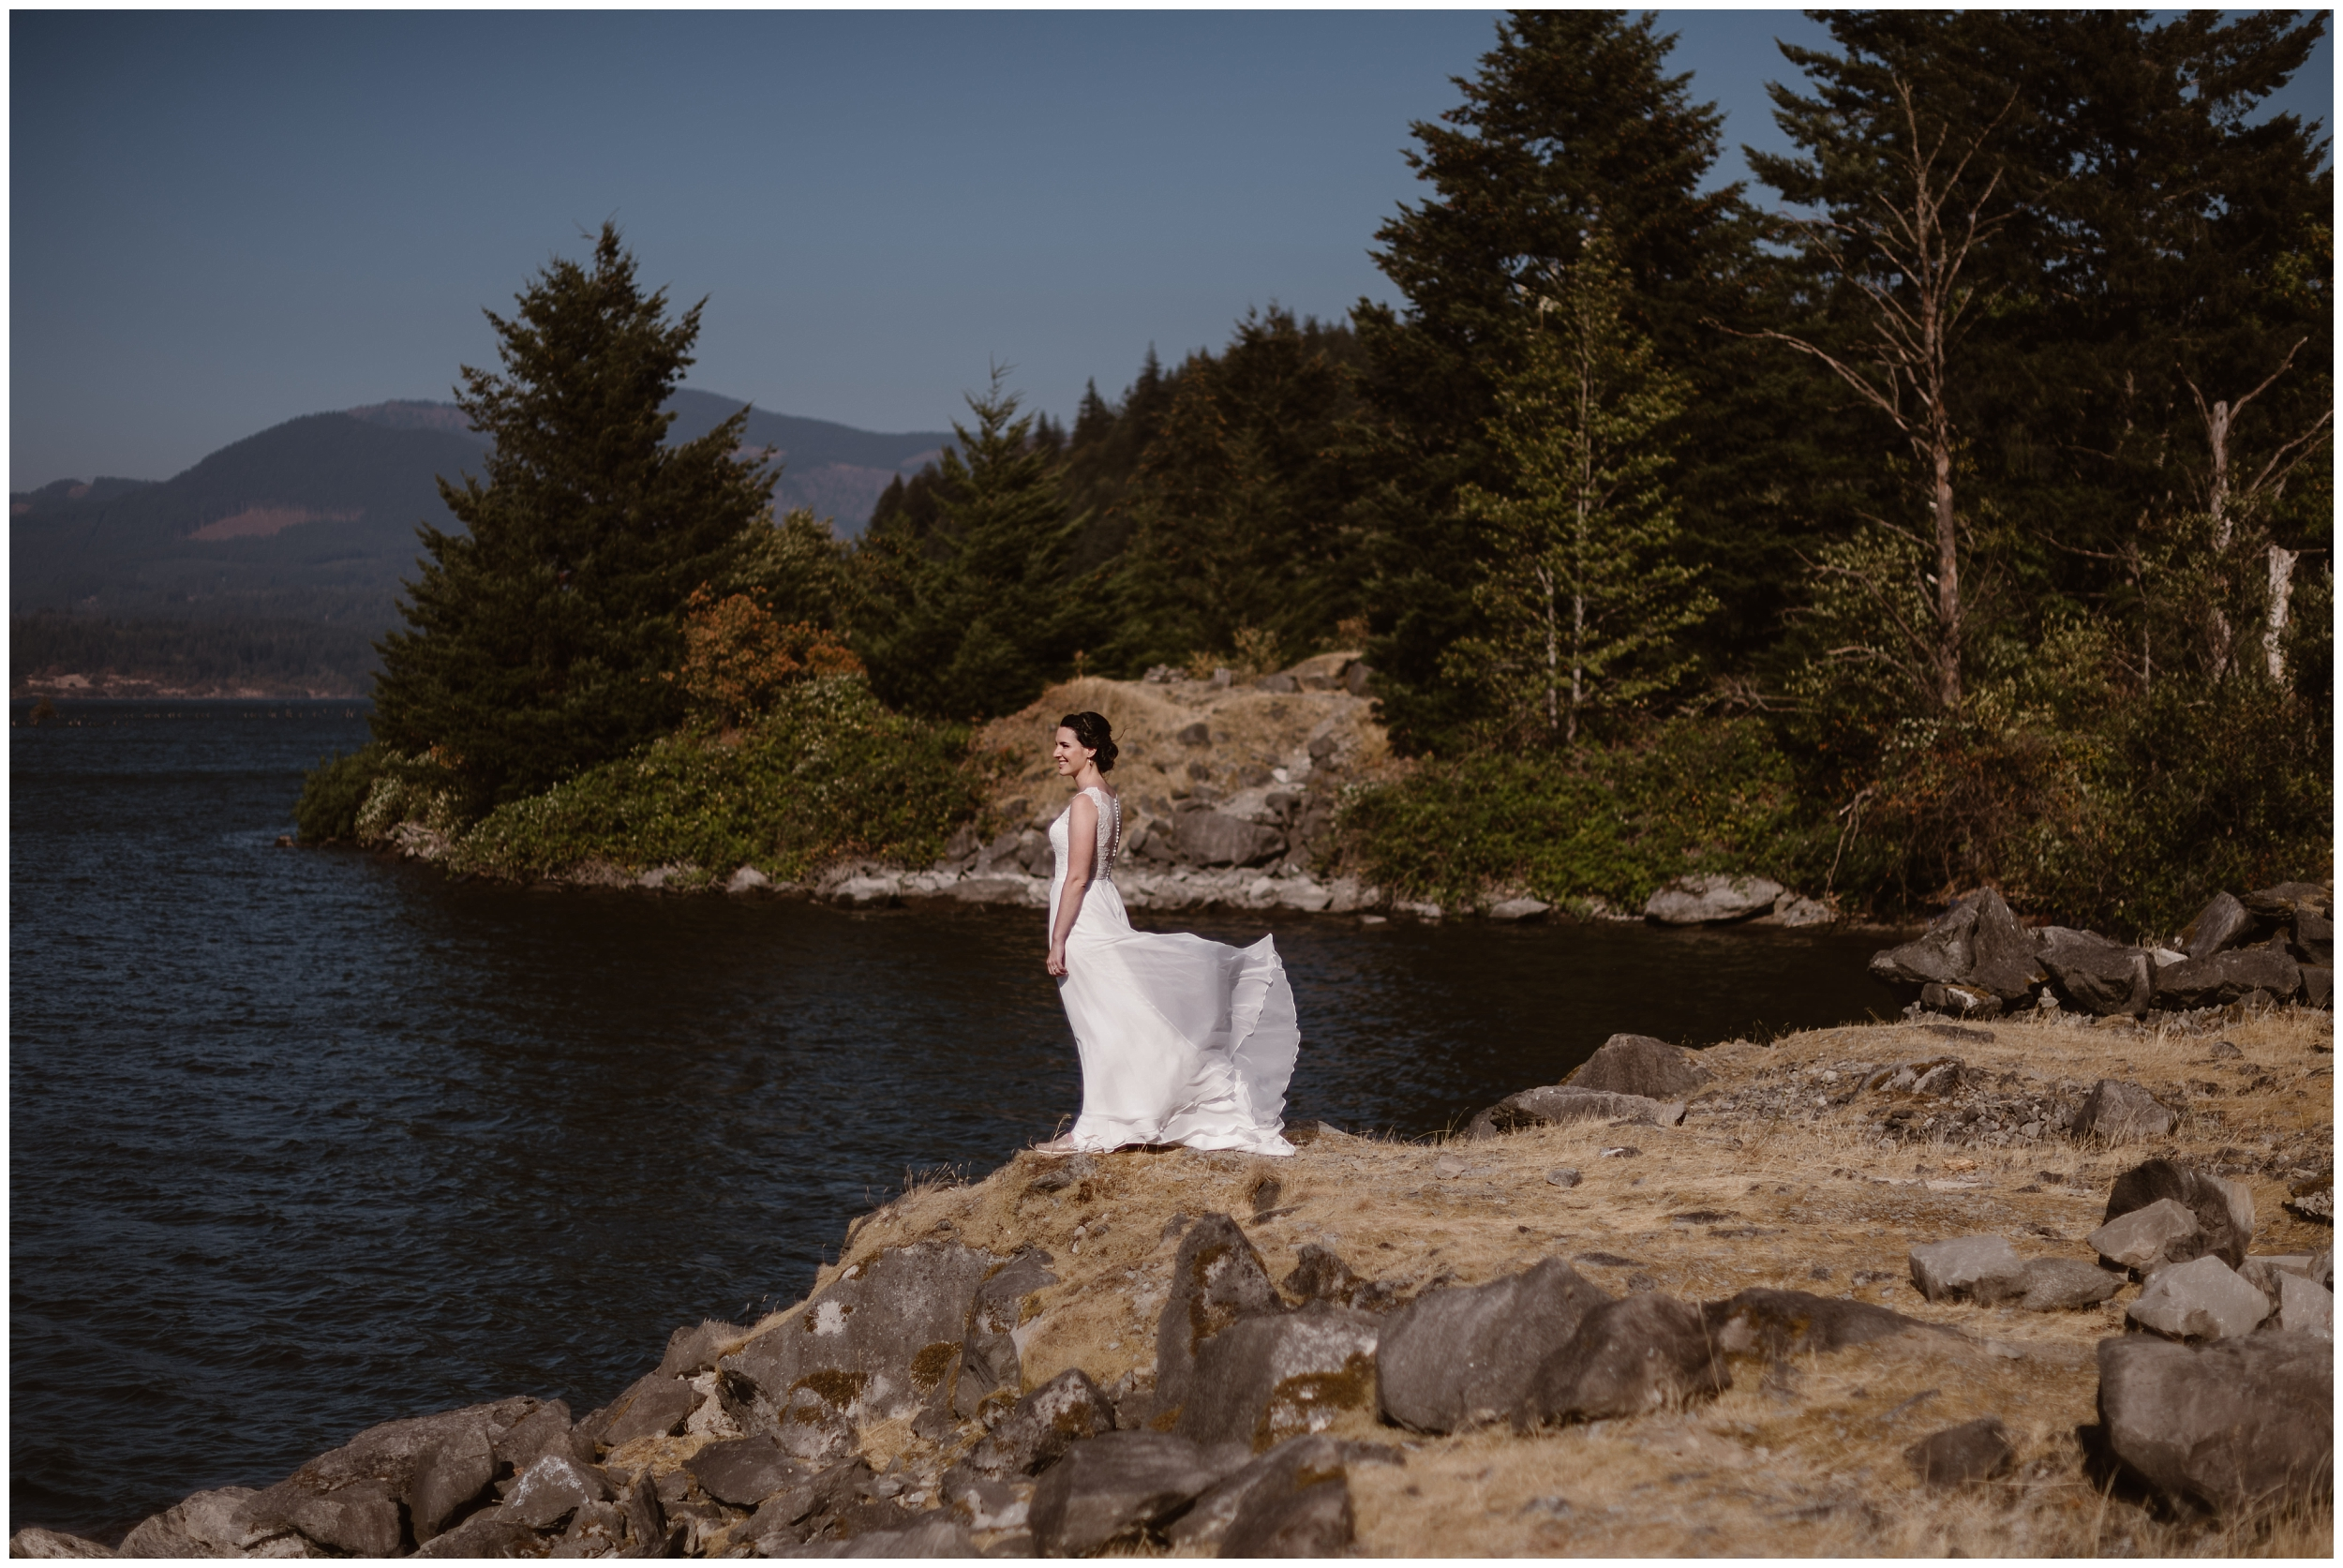 The bride, Lauryn, awaits her soon-to-be-husband for their first look before their elopement ceremony. They chose to have their small simple wedding in the Columbia River Gorge. This image was captured by Adventure Instead, an Oregon elopement photographer.